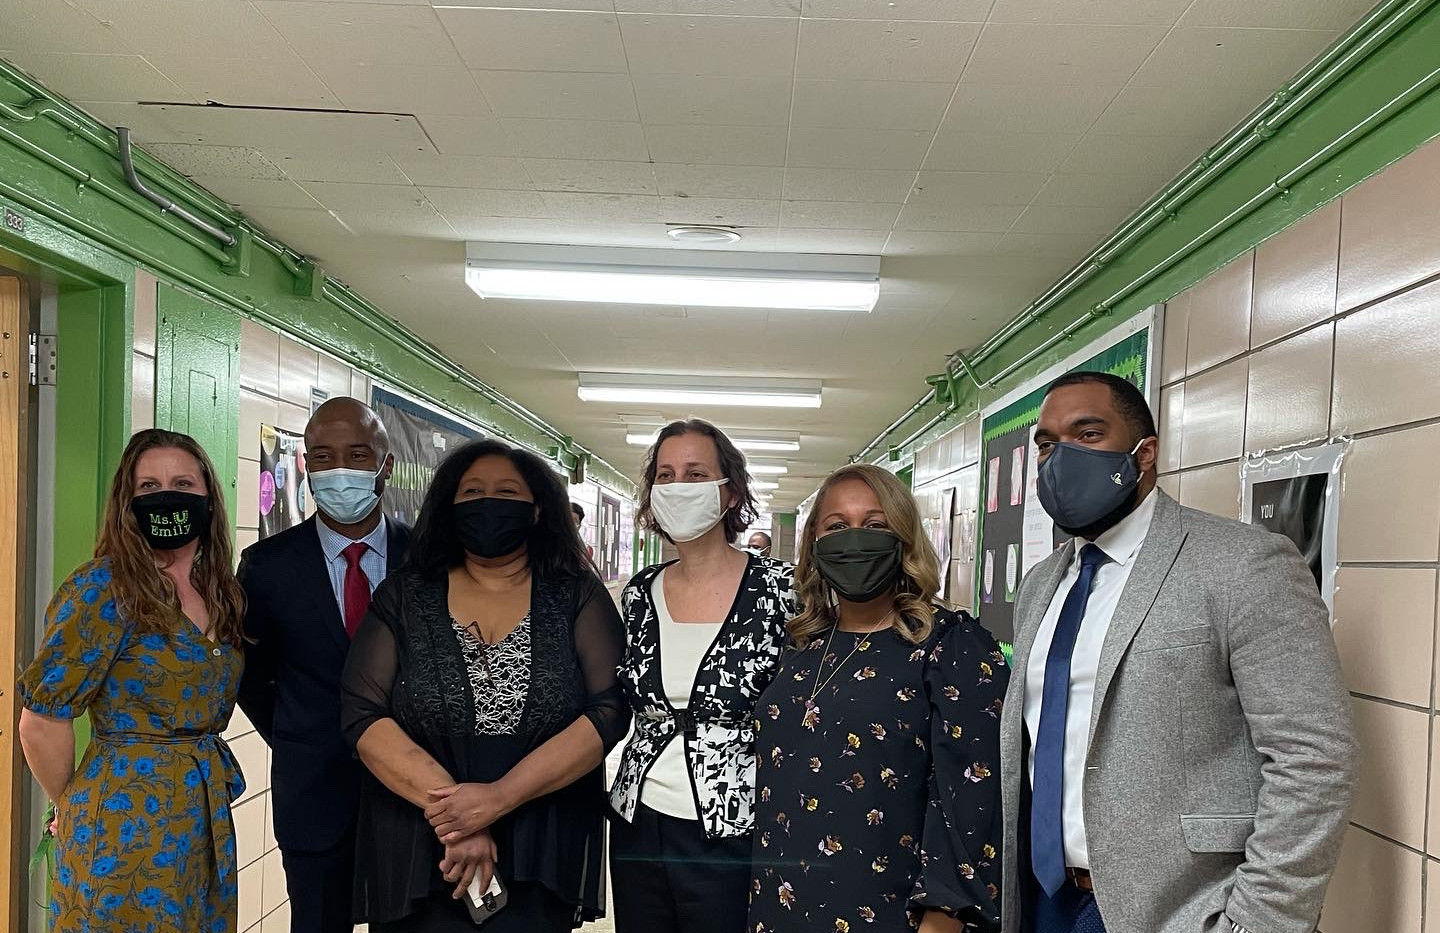 Principal Paige, Superintendent Kamar Samuels, Executive Superintendent Karen Watts, Julie Shapiro from the Fund for Public Schools, NYCDOE Chancellor Ross Porter, Brendan Frame from the Urban Assembly